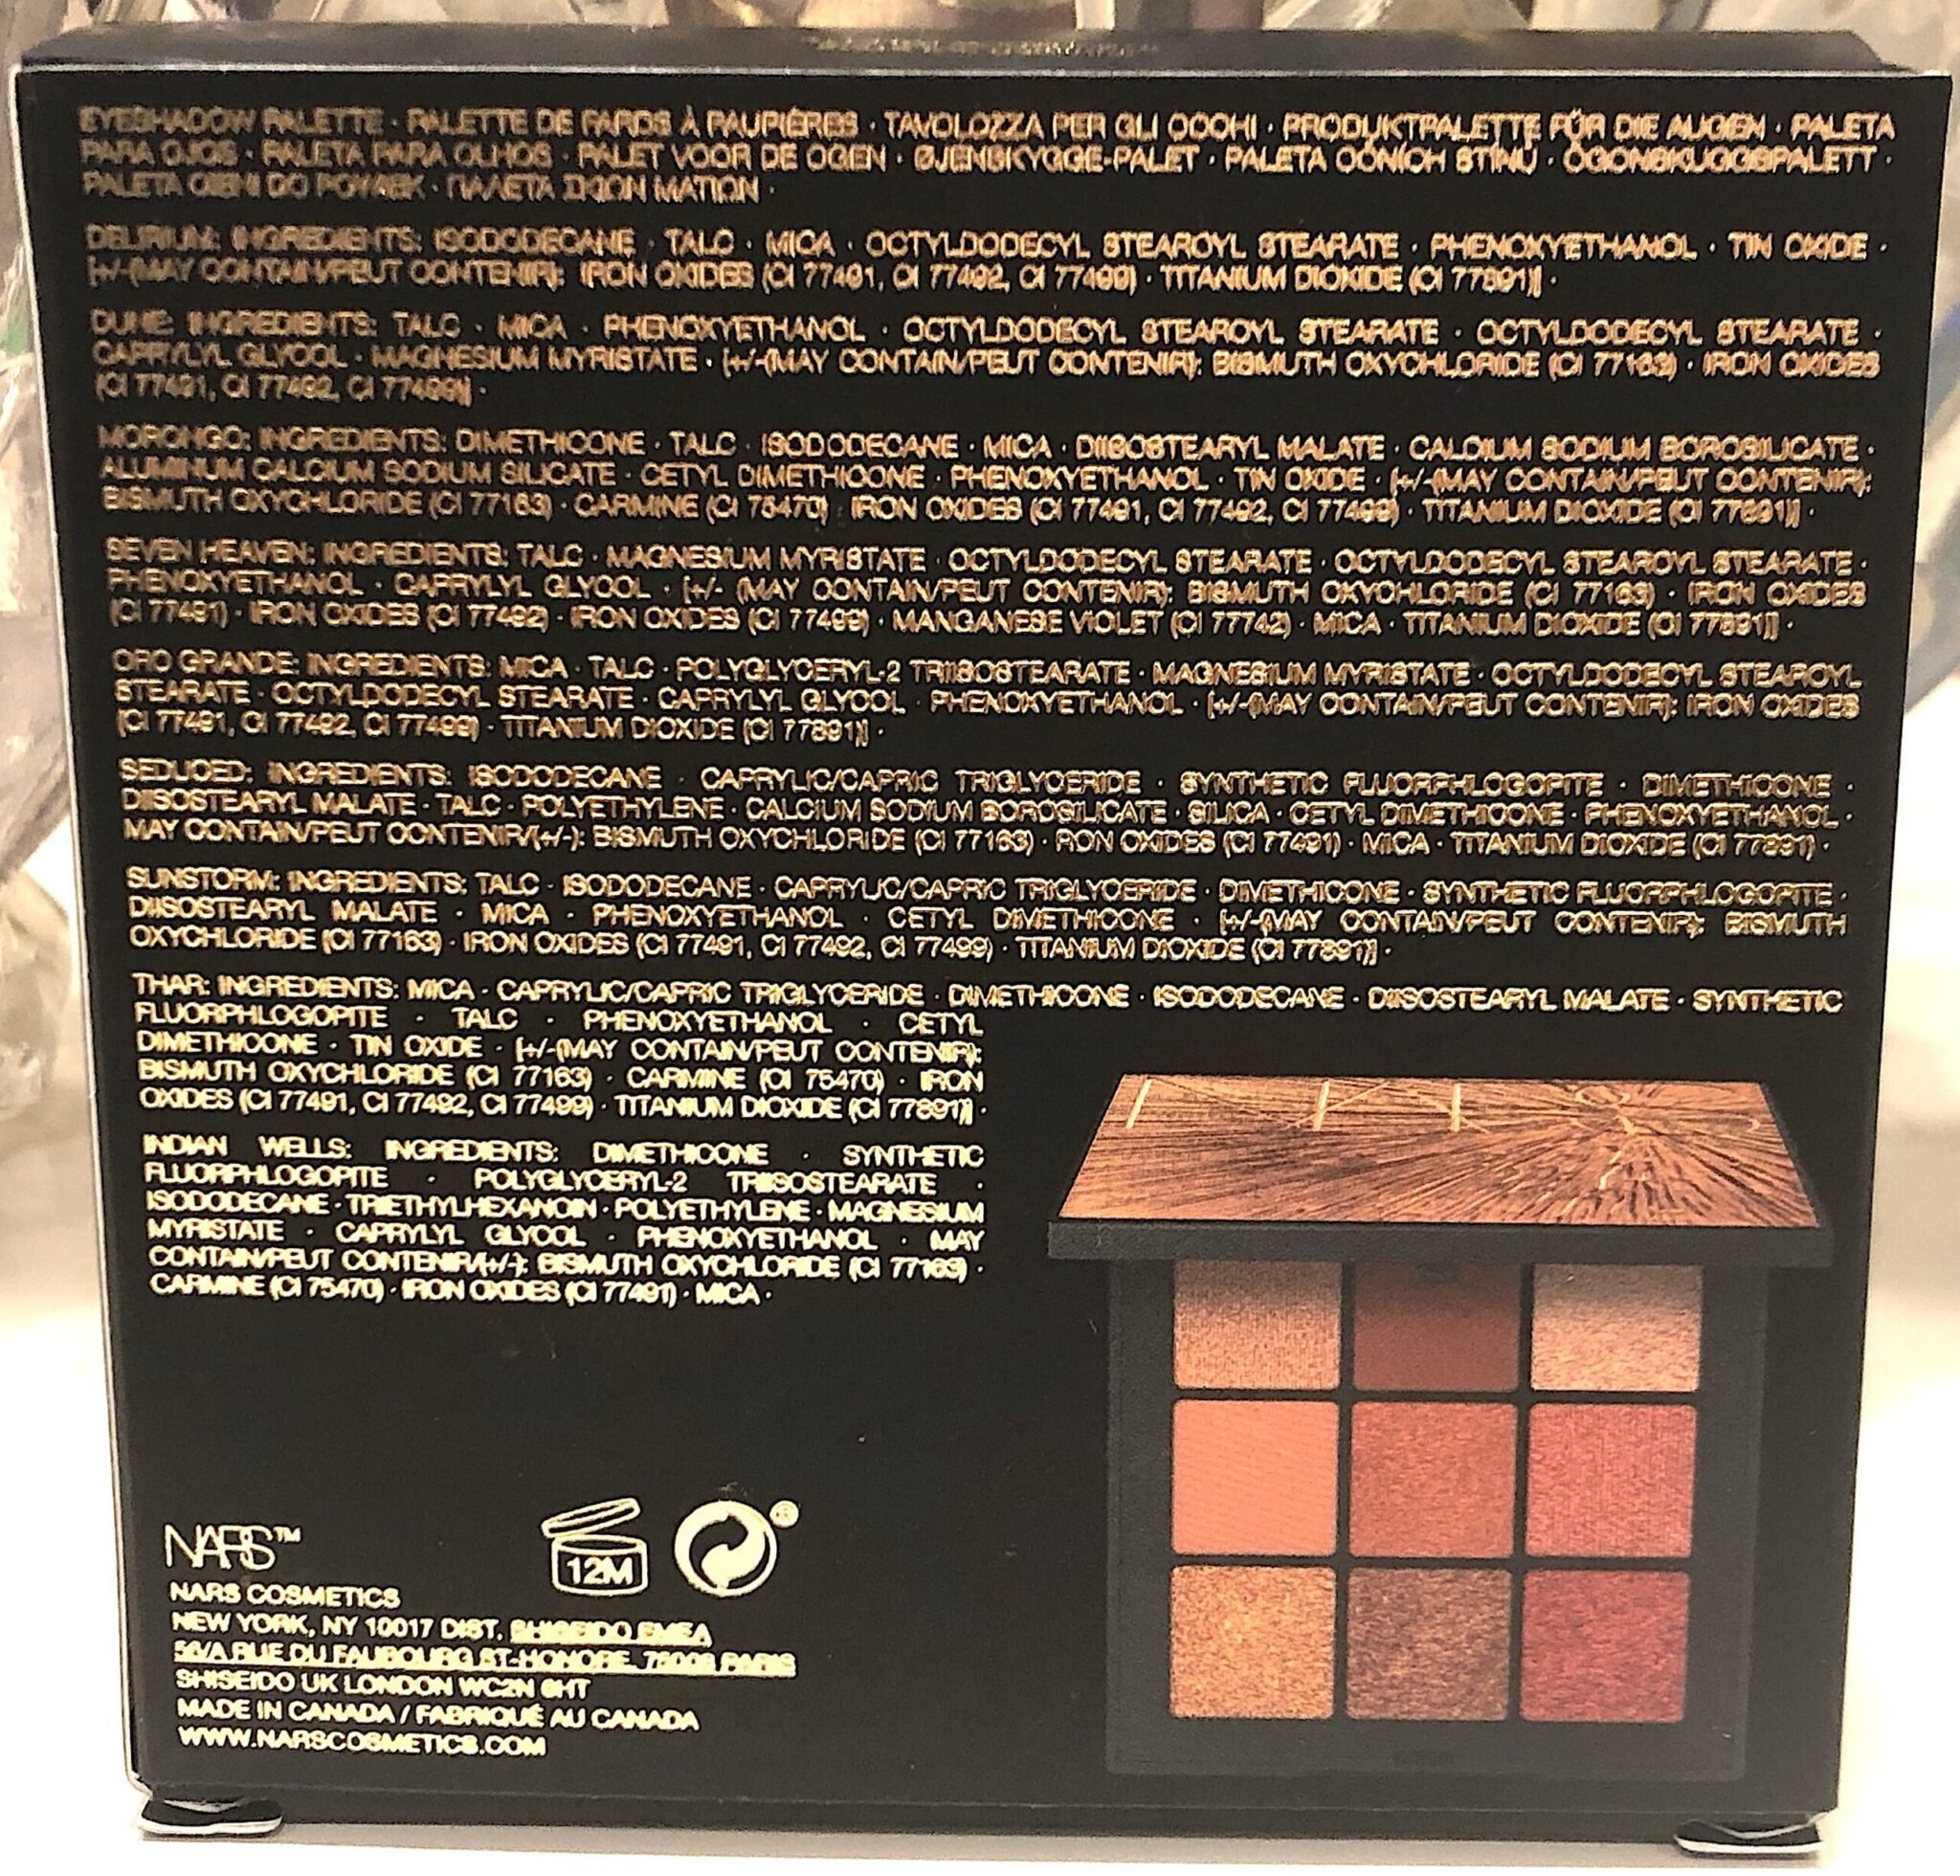 NARS SOLSTICE 2021 COLLECTION INGREDIENTS FOR THE EYESHADOW PALETTE